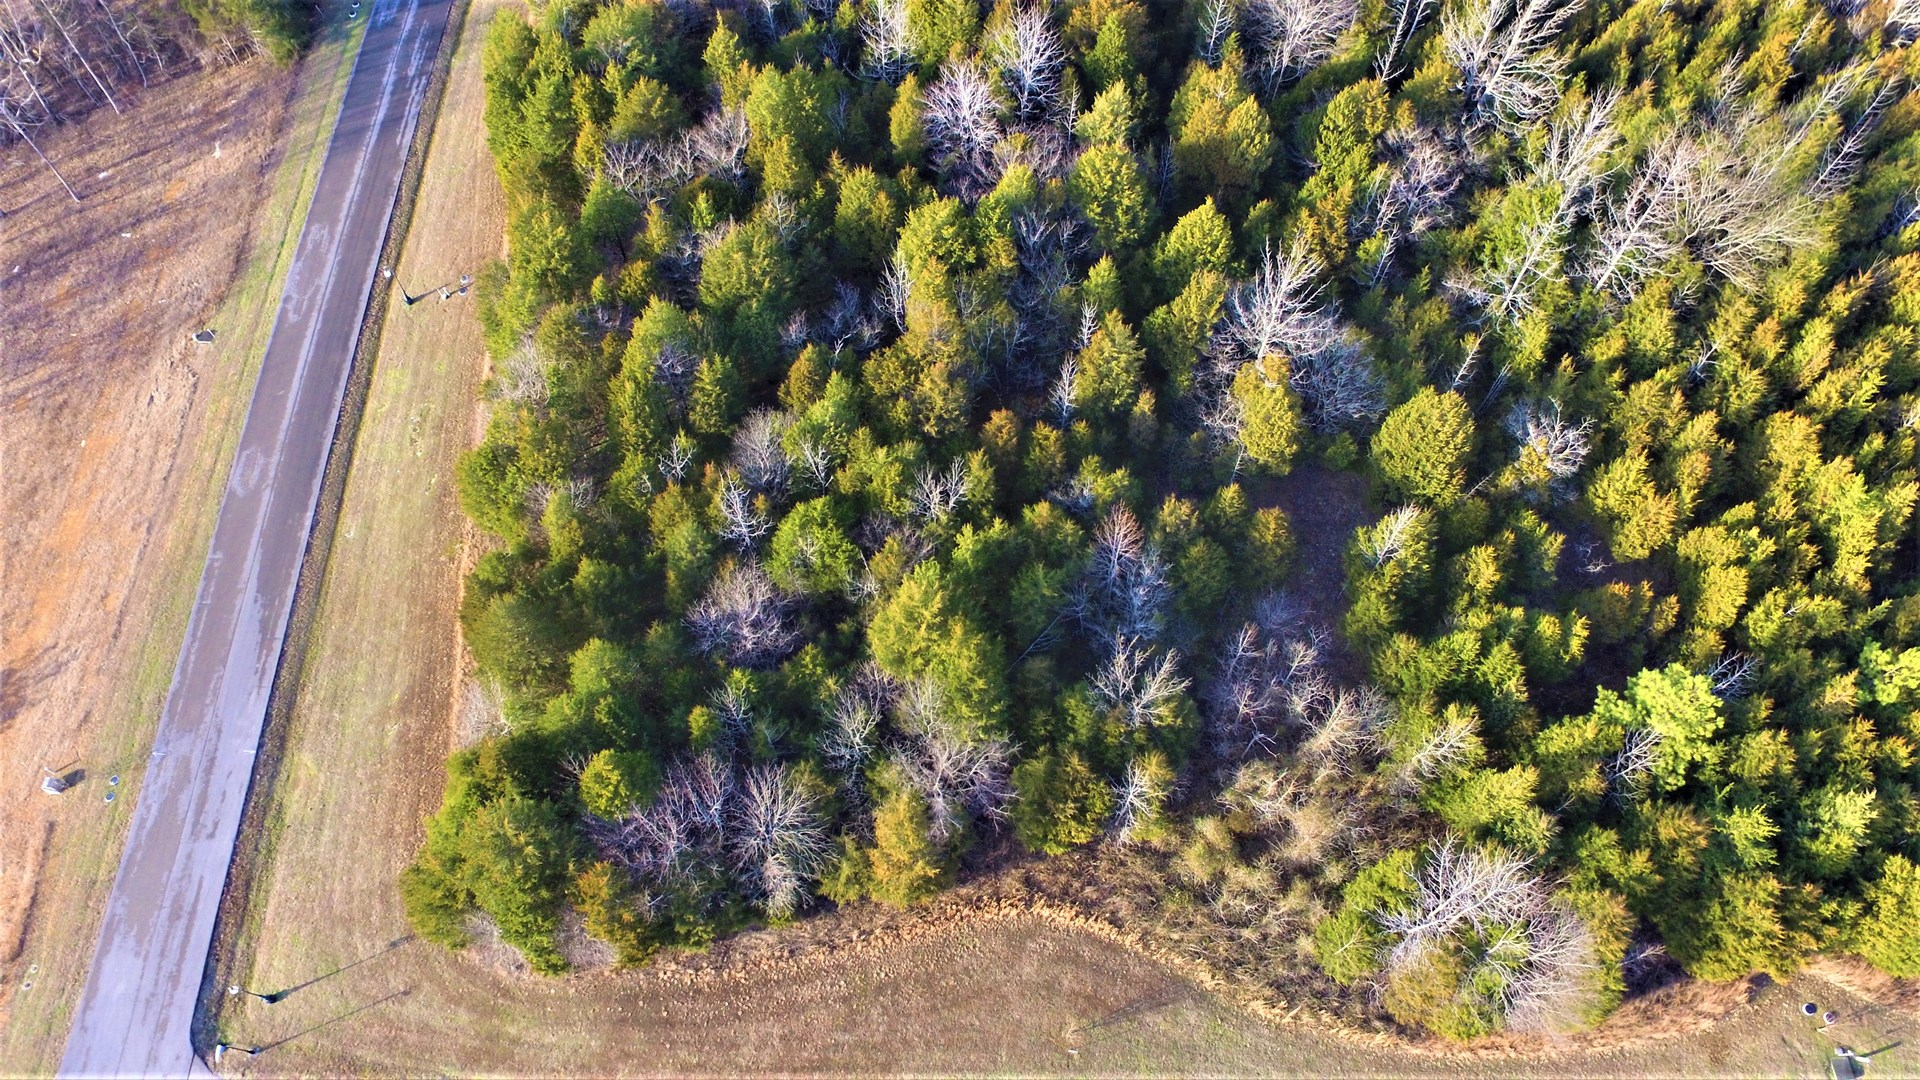 Lake Lot for sale in Barren County KY